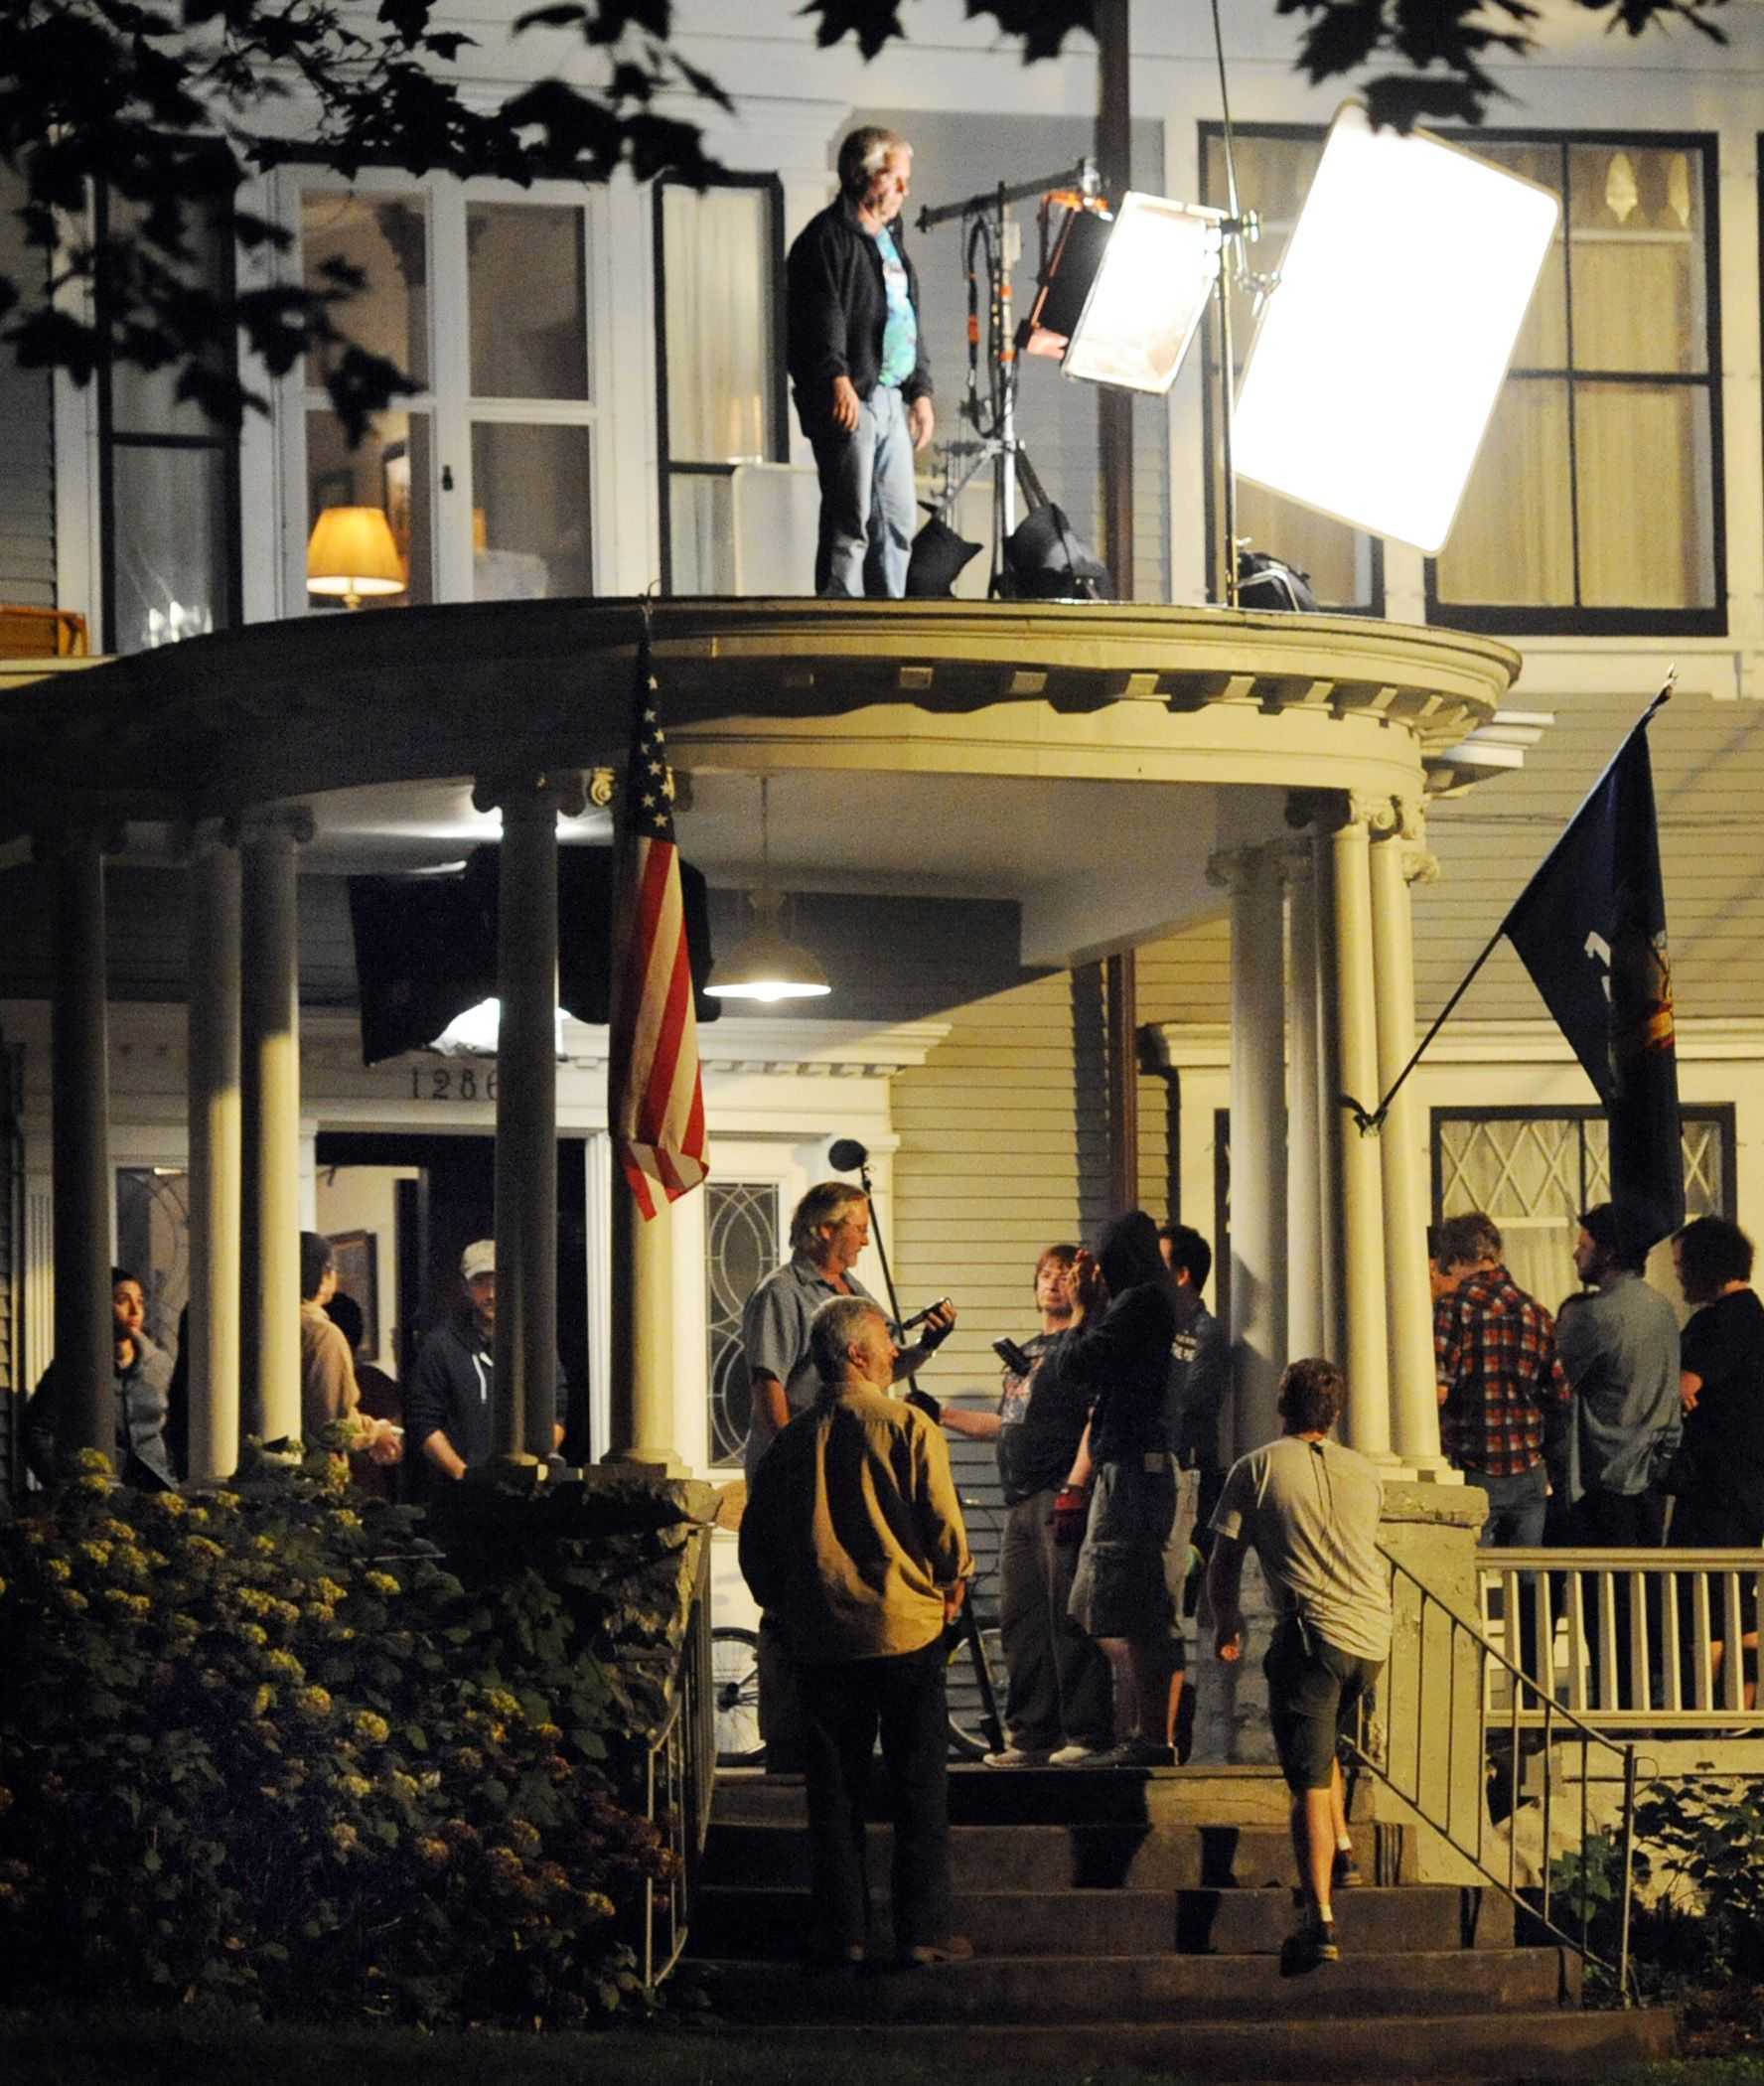 Film crews set up a shot at 1286 Wendell Avenue in Schenectady on the final day of filming for the movie 'The Place Beyond the Pines' early Sunday, September 25, 2011.